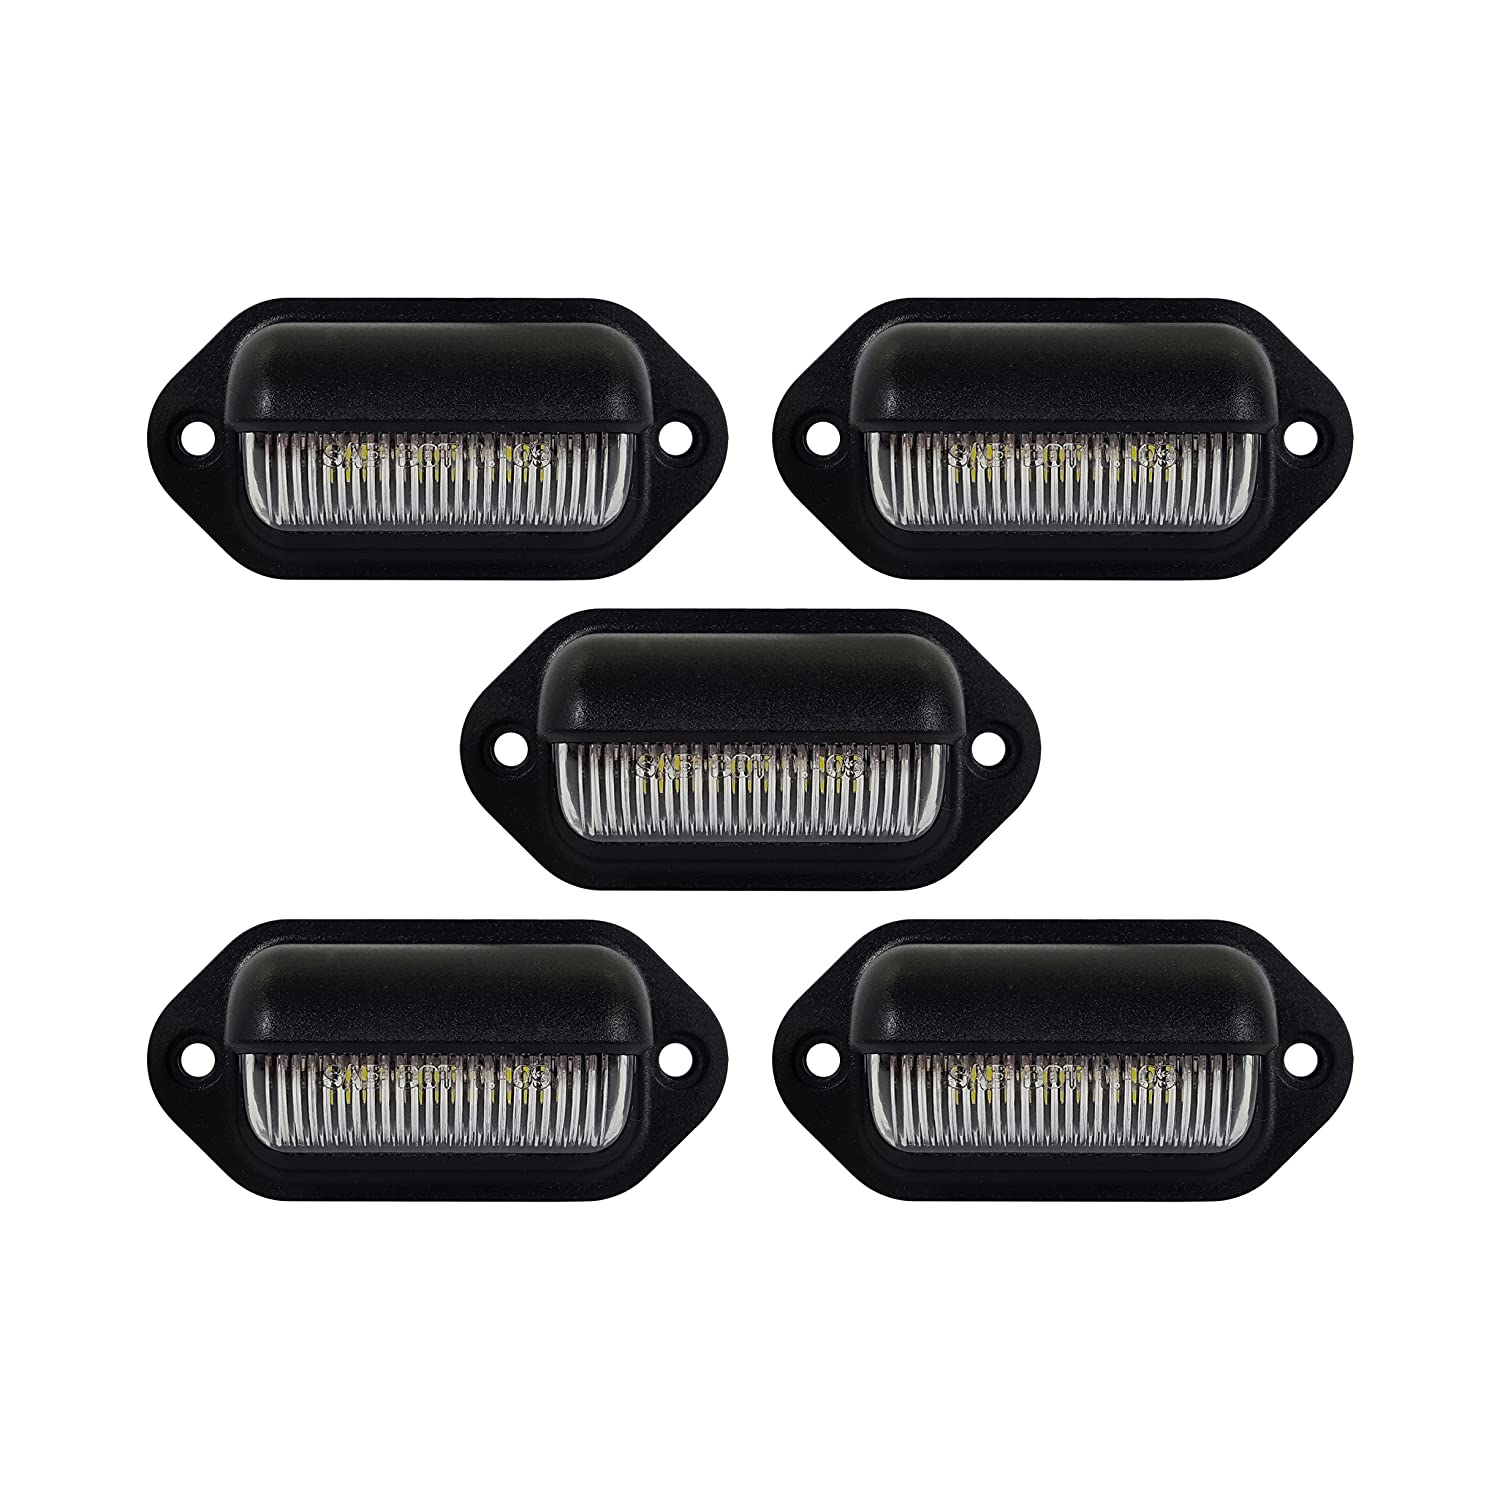 5 LED LICENSE PLATE TAG LIGHT BLACK BOAT TRAILER RV TRUCK INTERIOR STEP LIGHT Long Haul ELK-132706B5